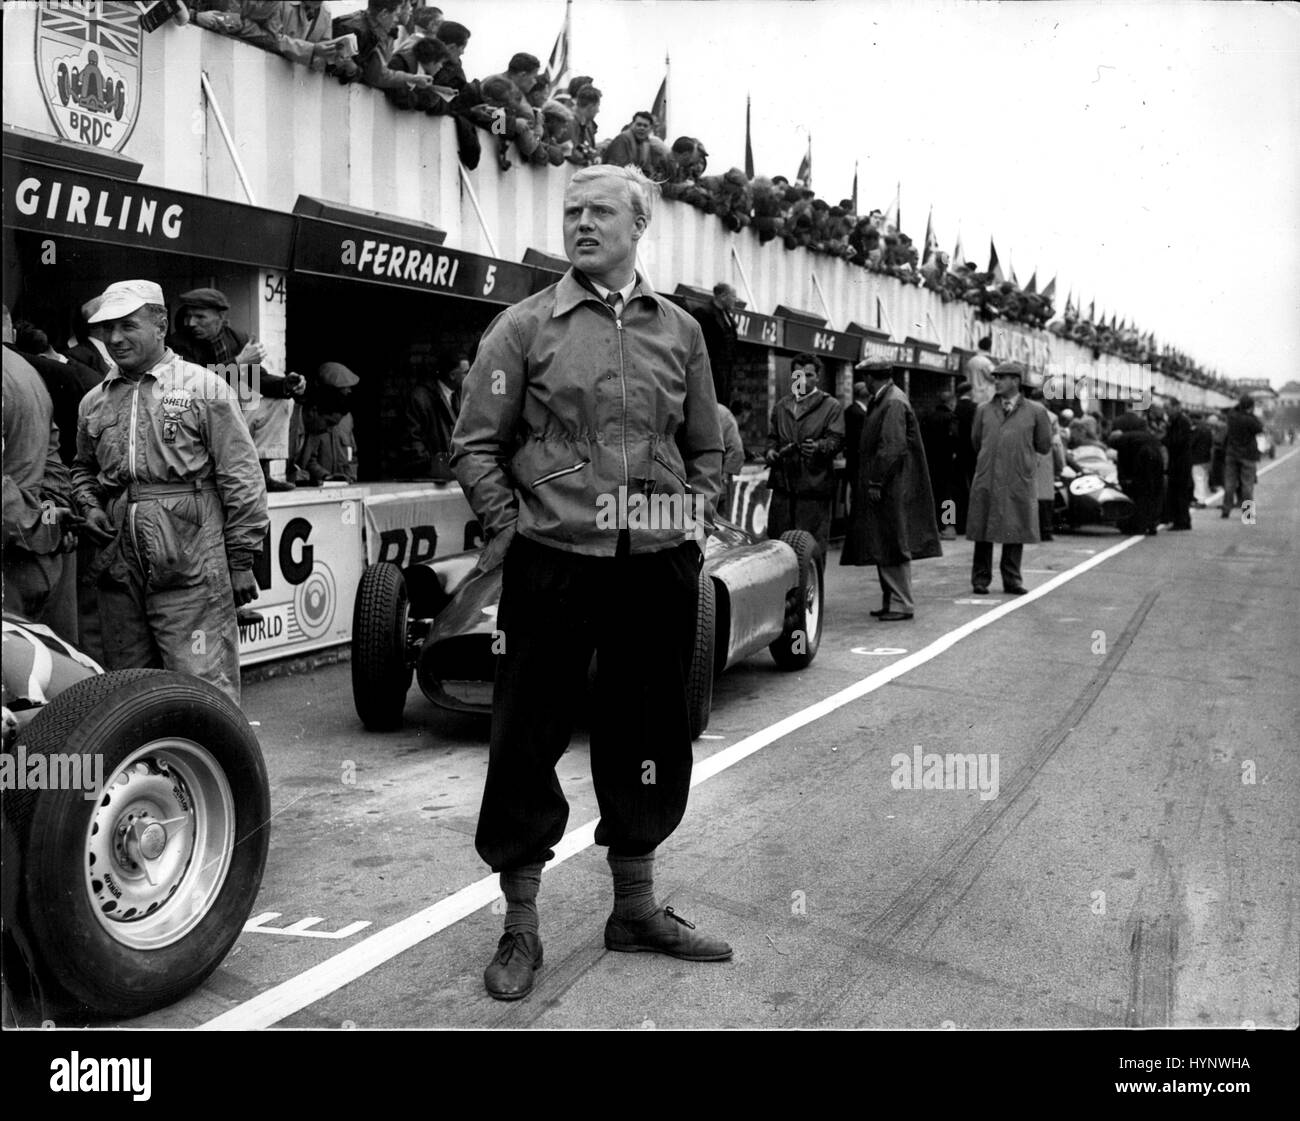 Jan. 01, 1959 - Mike Hawthorn killed when car hits tree flashback - Silverstone 1956: Mike Hawthorn, Britain US - Stock Image